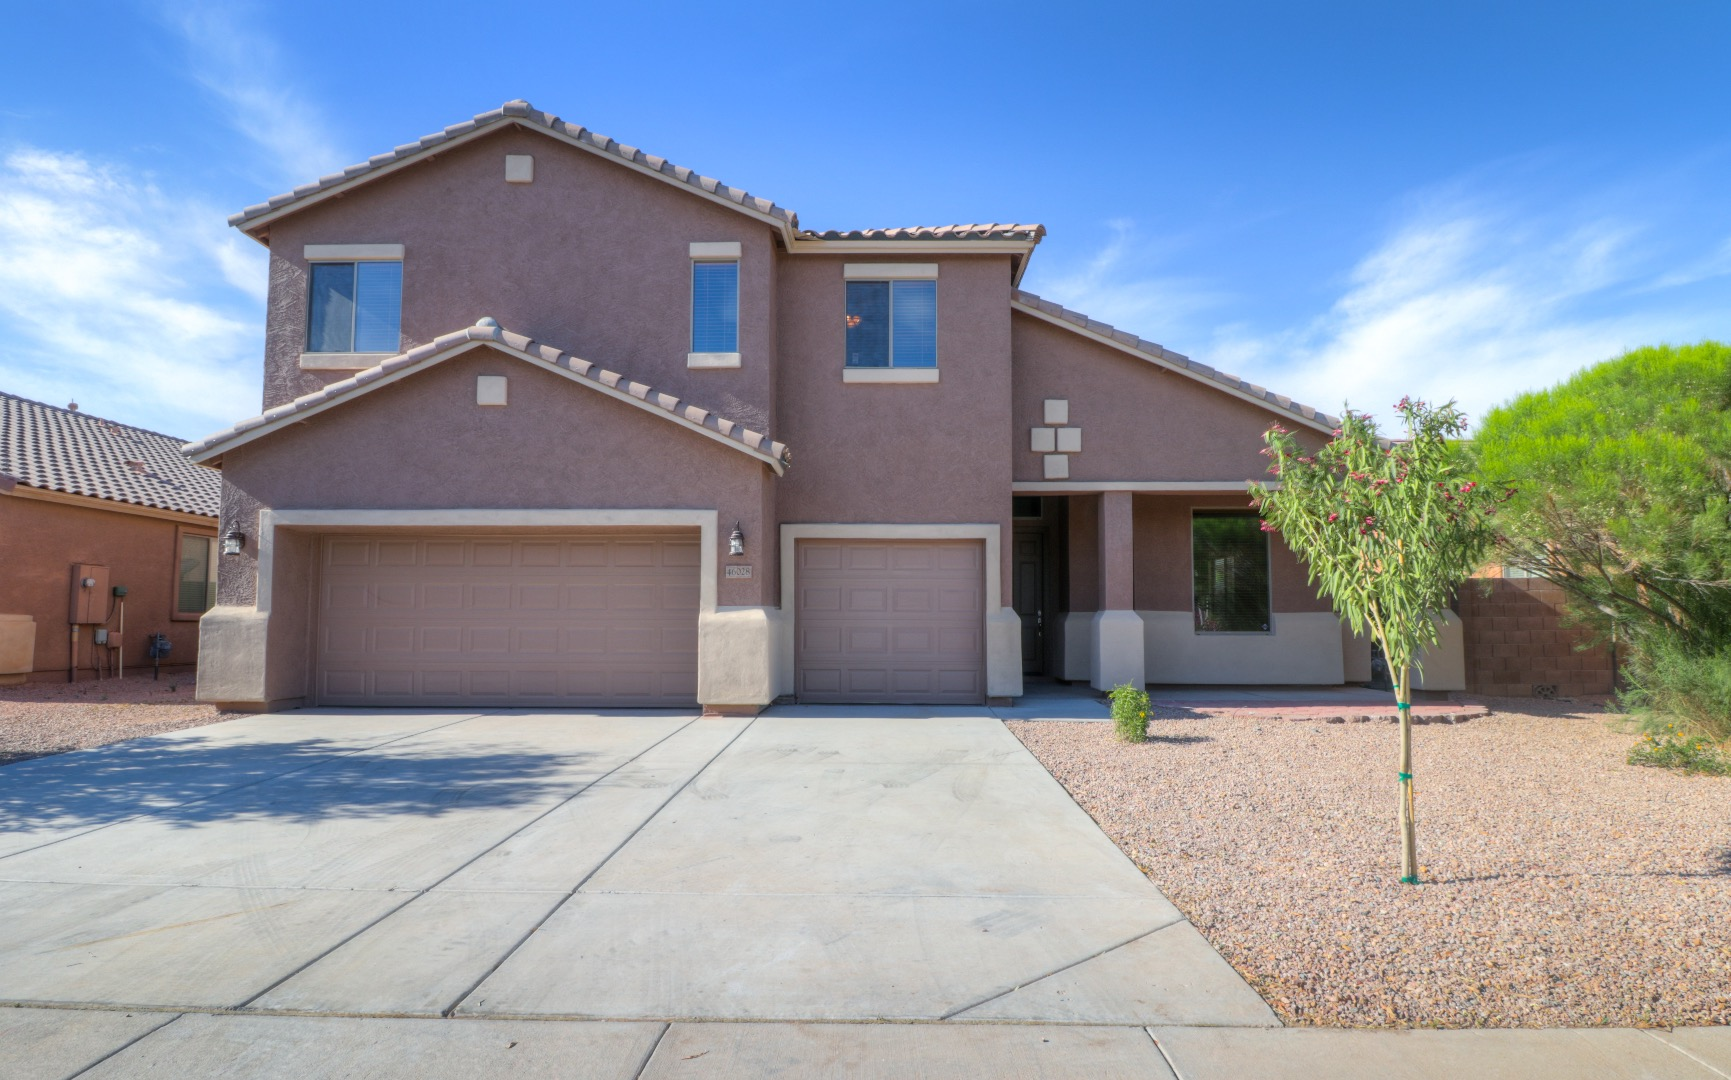 46083 W Meadows Ln in Maricopa Meadows